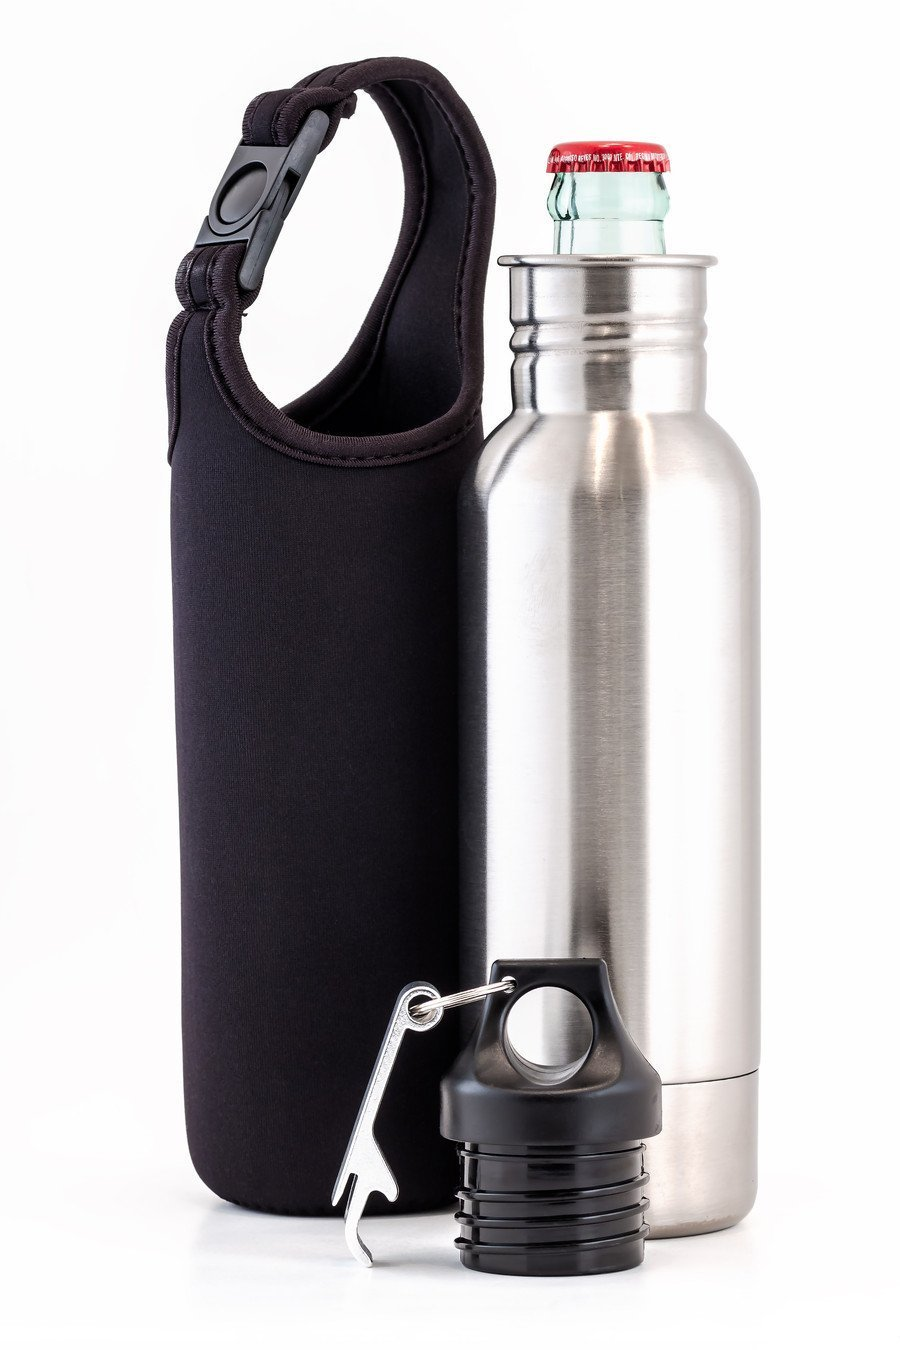 Zoyy Stainless Steel Beer Bottle Holder Insulator With Opener and Carrying Case